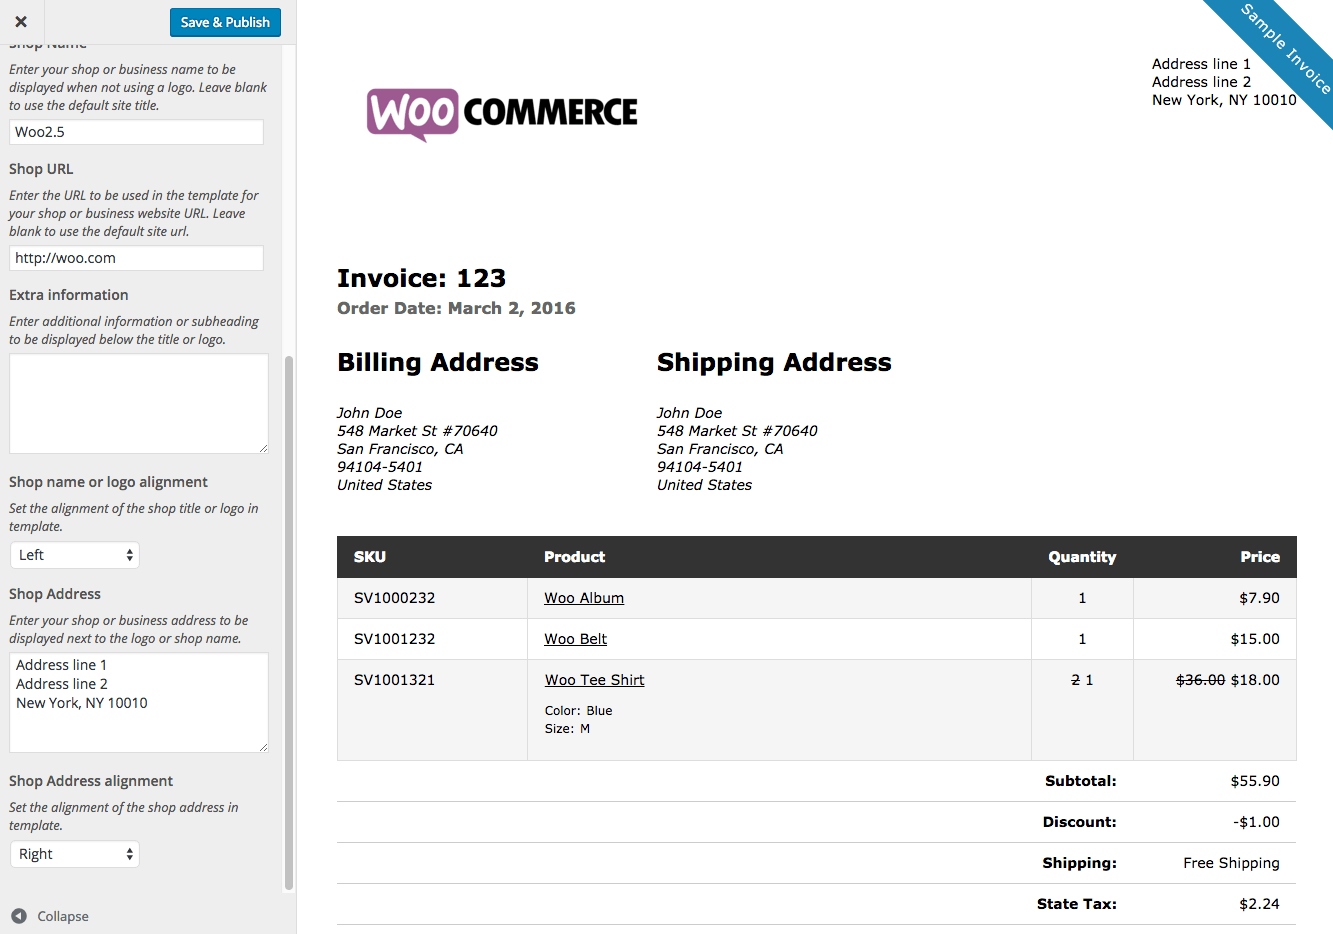 Atvingus  Unusual Print Invoices Amp Packing Lists  Woocommerce With Exciting Woocommerce Print Invoices  Packing Lists Customizer With Astonishing Invoice Customer Also Best Invoice Design In Addition Non Payment Of Invoice And Invoice With Gst Template As Well As Proforma Invoice For Advance Payment Additionally Sample Invoices Excel From Woocommercecom With Atvingus  Exciting Print Invoices Amp Packing Lists  Woocommerce With Astonishing Woocommerce Print Invoices  Packing Lists Customizer And Unusual Invoice Customer Also Best Invoice Design In Addition Non Payment Of Invoice From Woocommercecom